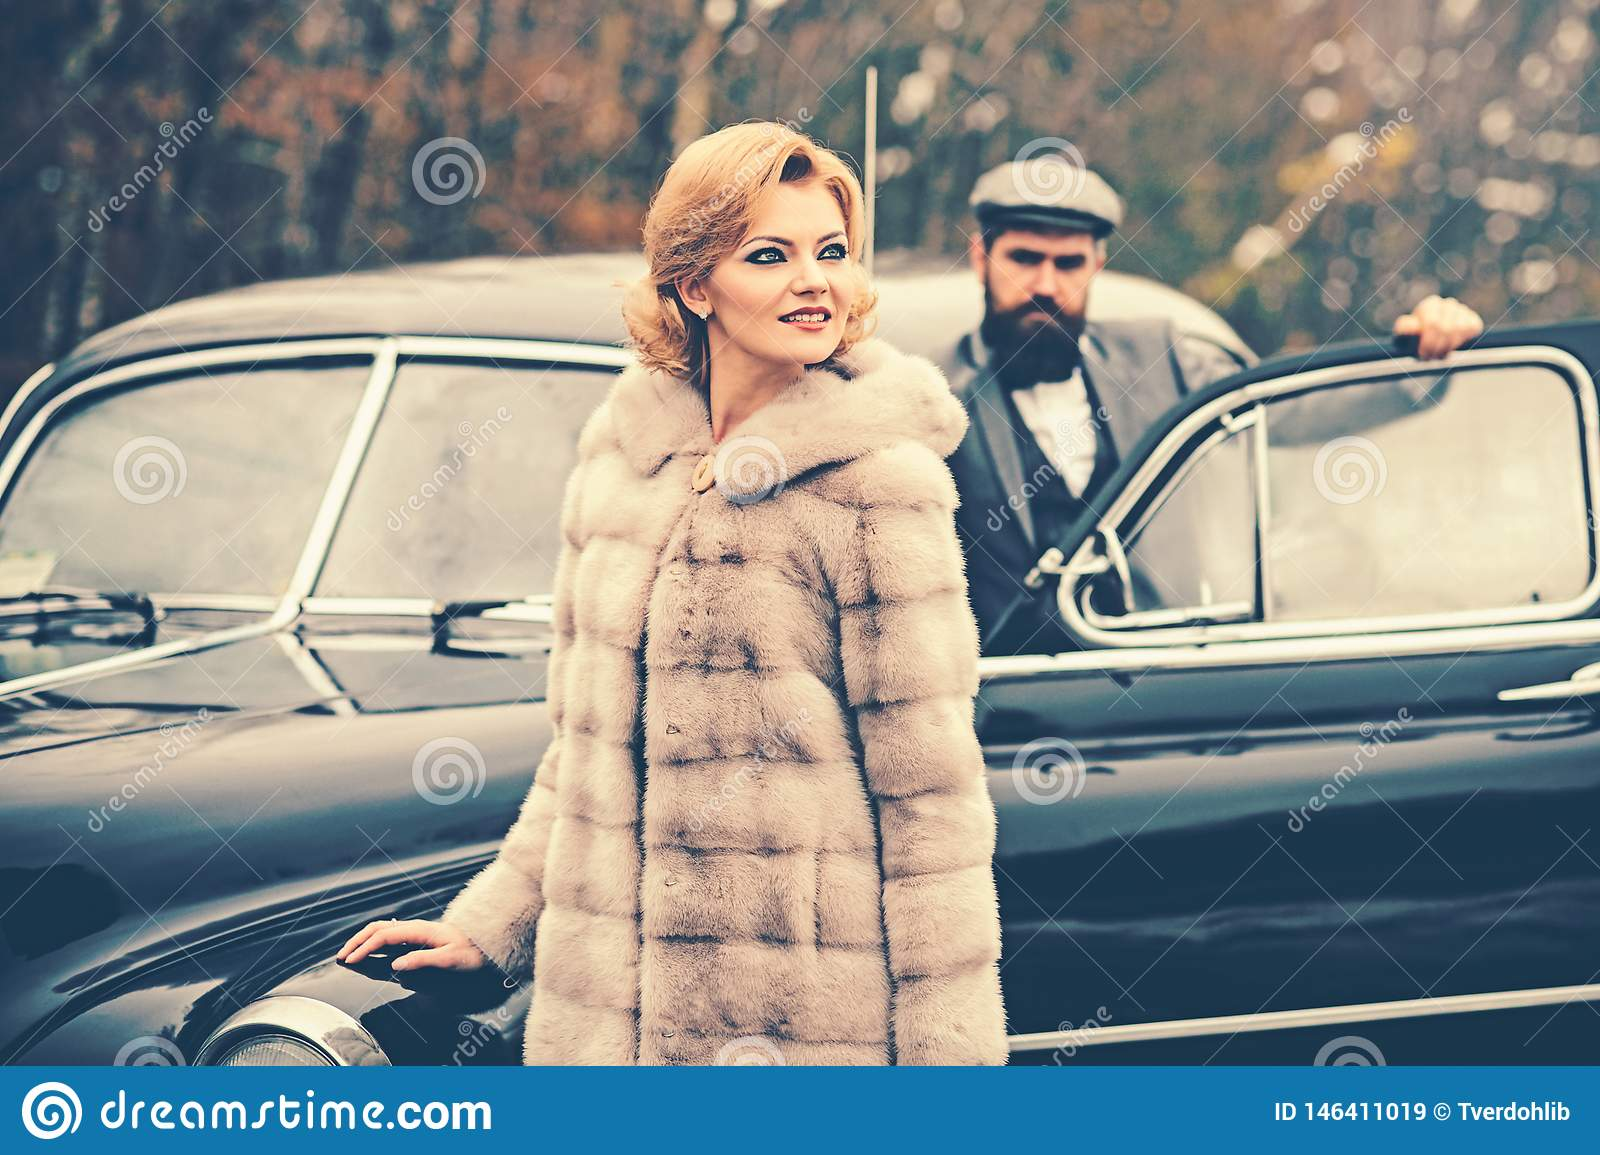 Travel and business trip or hitch hiking. Bearded man and sexy woman in fur coat. Retro collection car and auto repair